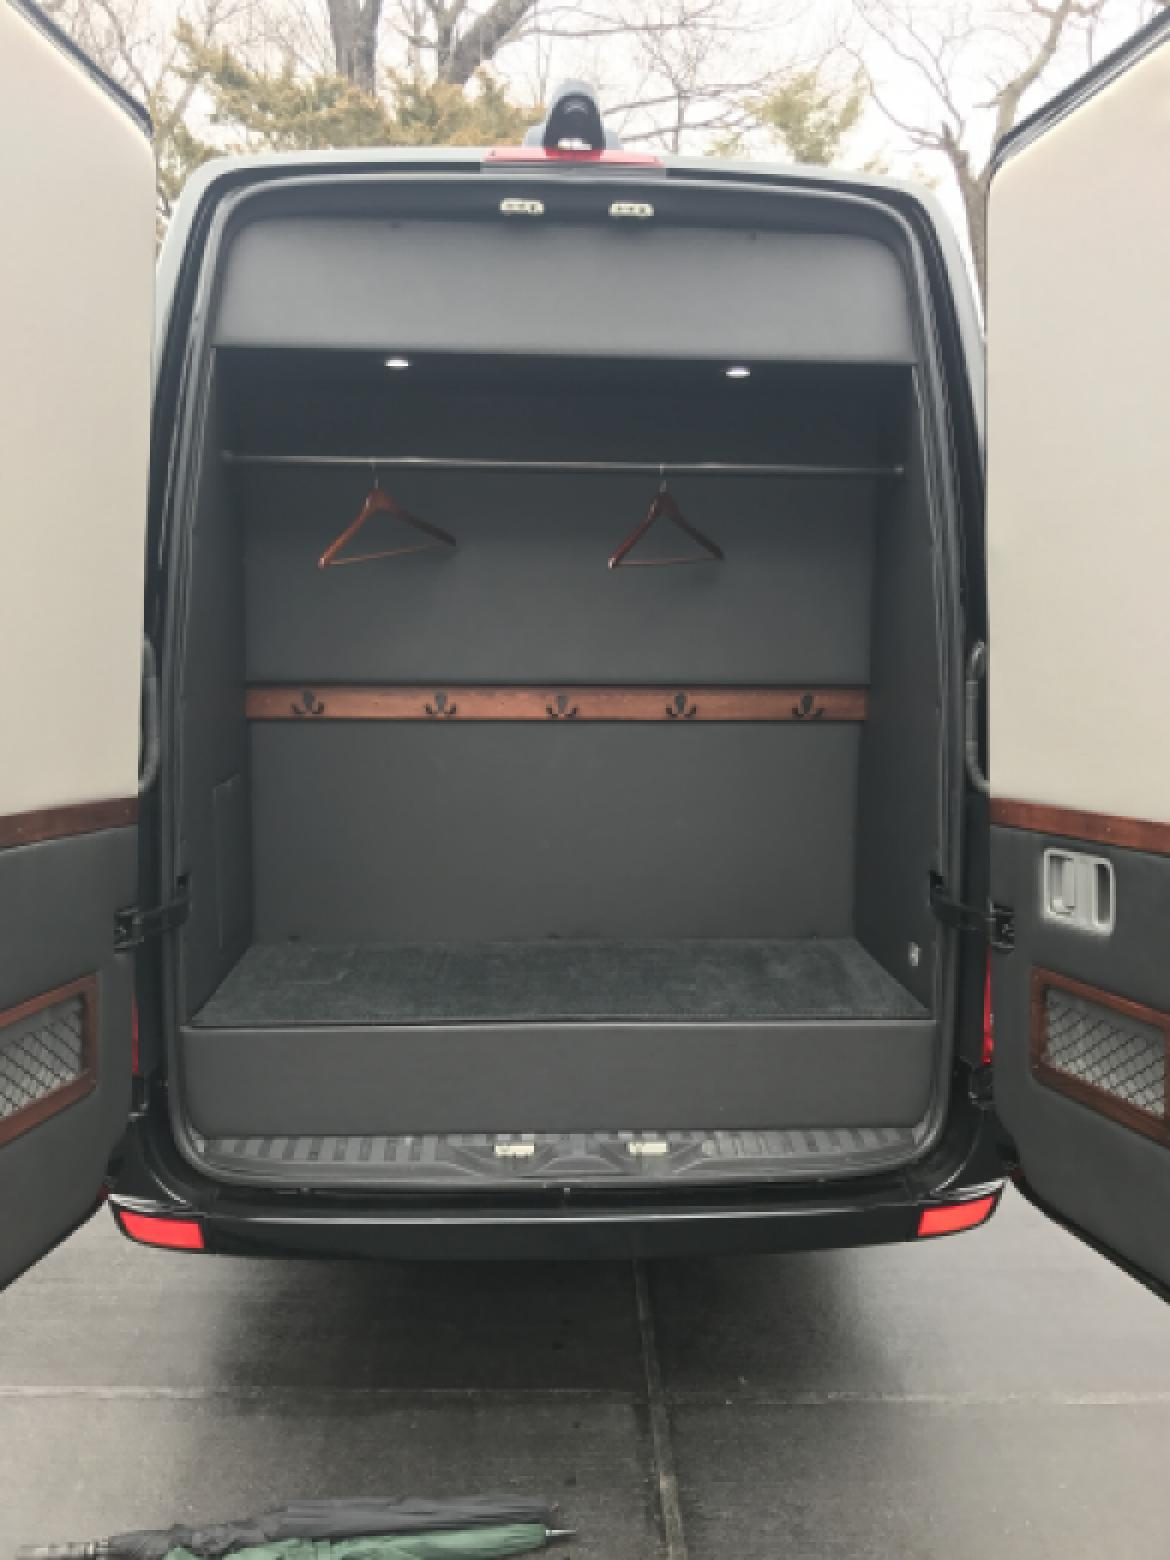 Photo of Sprinter for sale: 2014 Mercedes-Benz Sprinter 2500 by McSweeney Designs